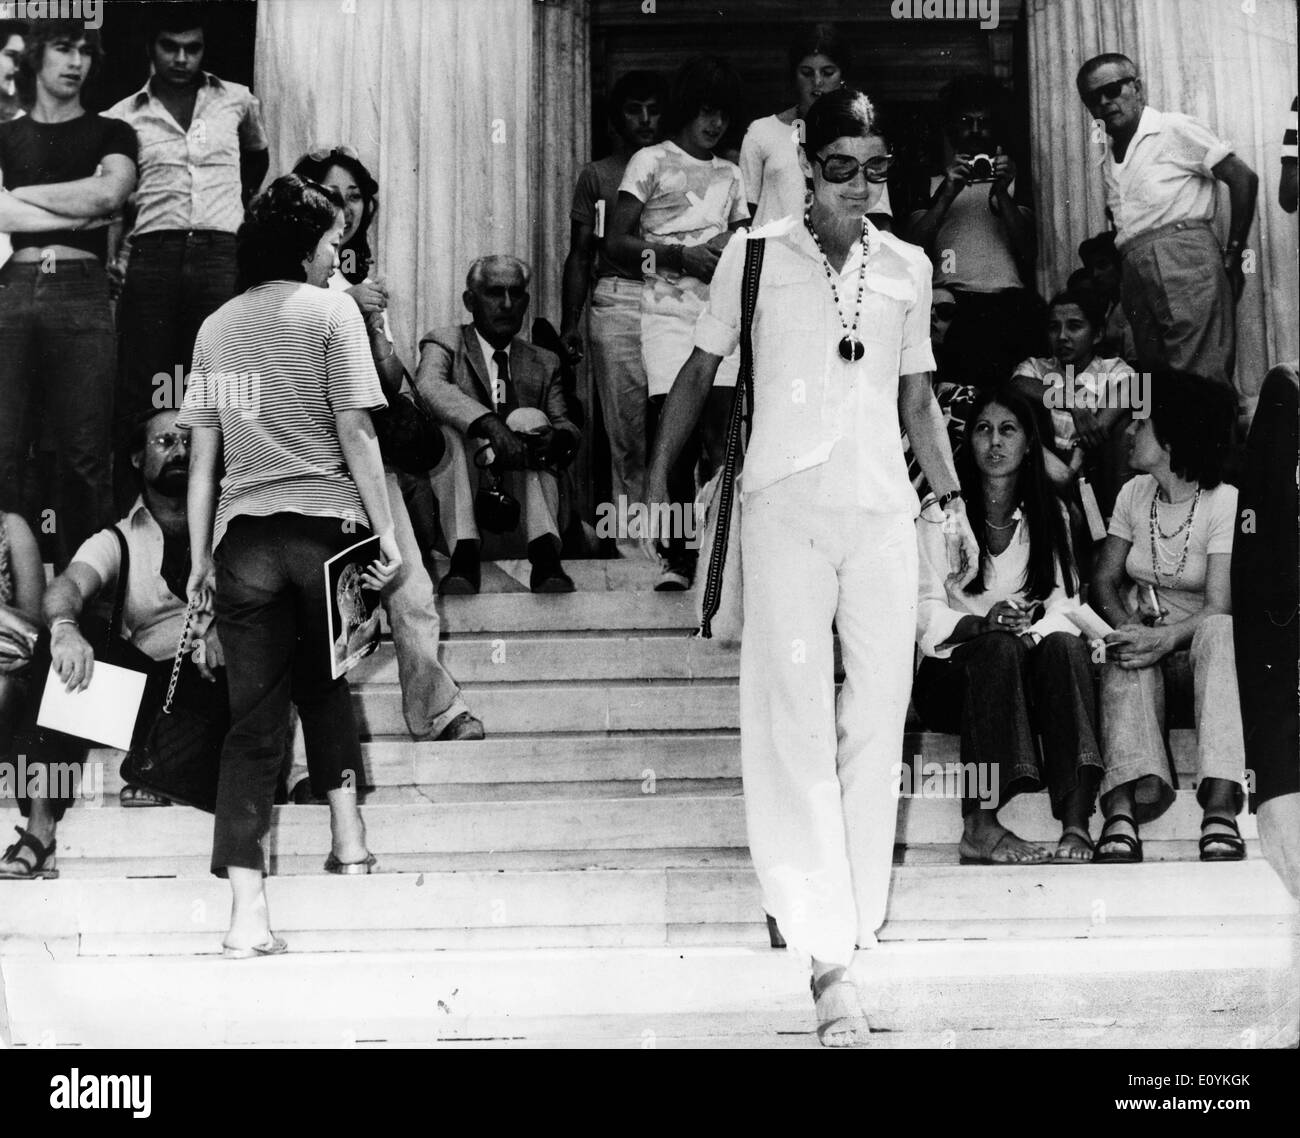 First Lady Jackie Kennedy Onassis sight sees in Greece - Stock Image